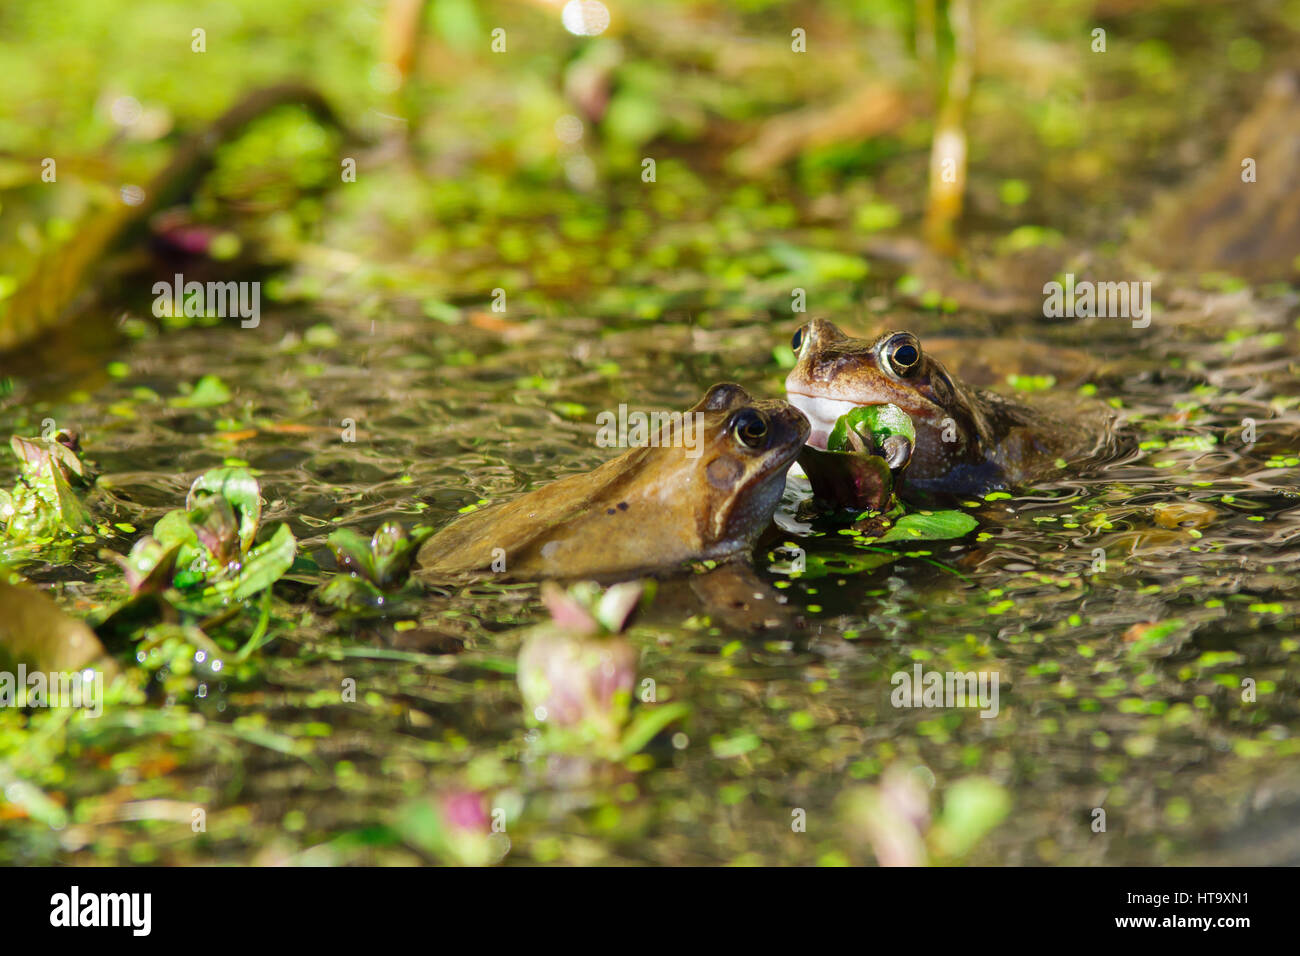 Wild common Frogs (Rana temporaria) surrounded by frog spawn in a pond - Stock Image